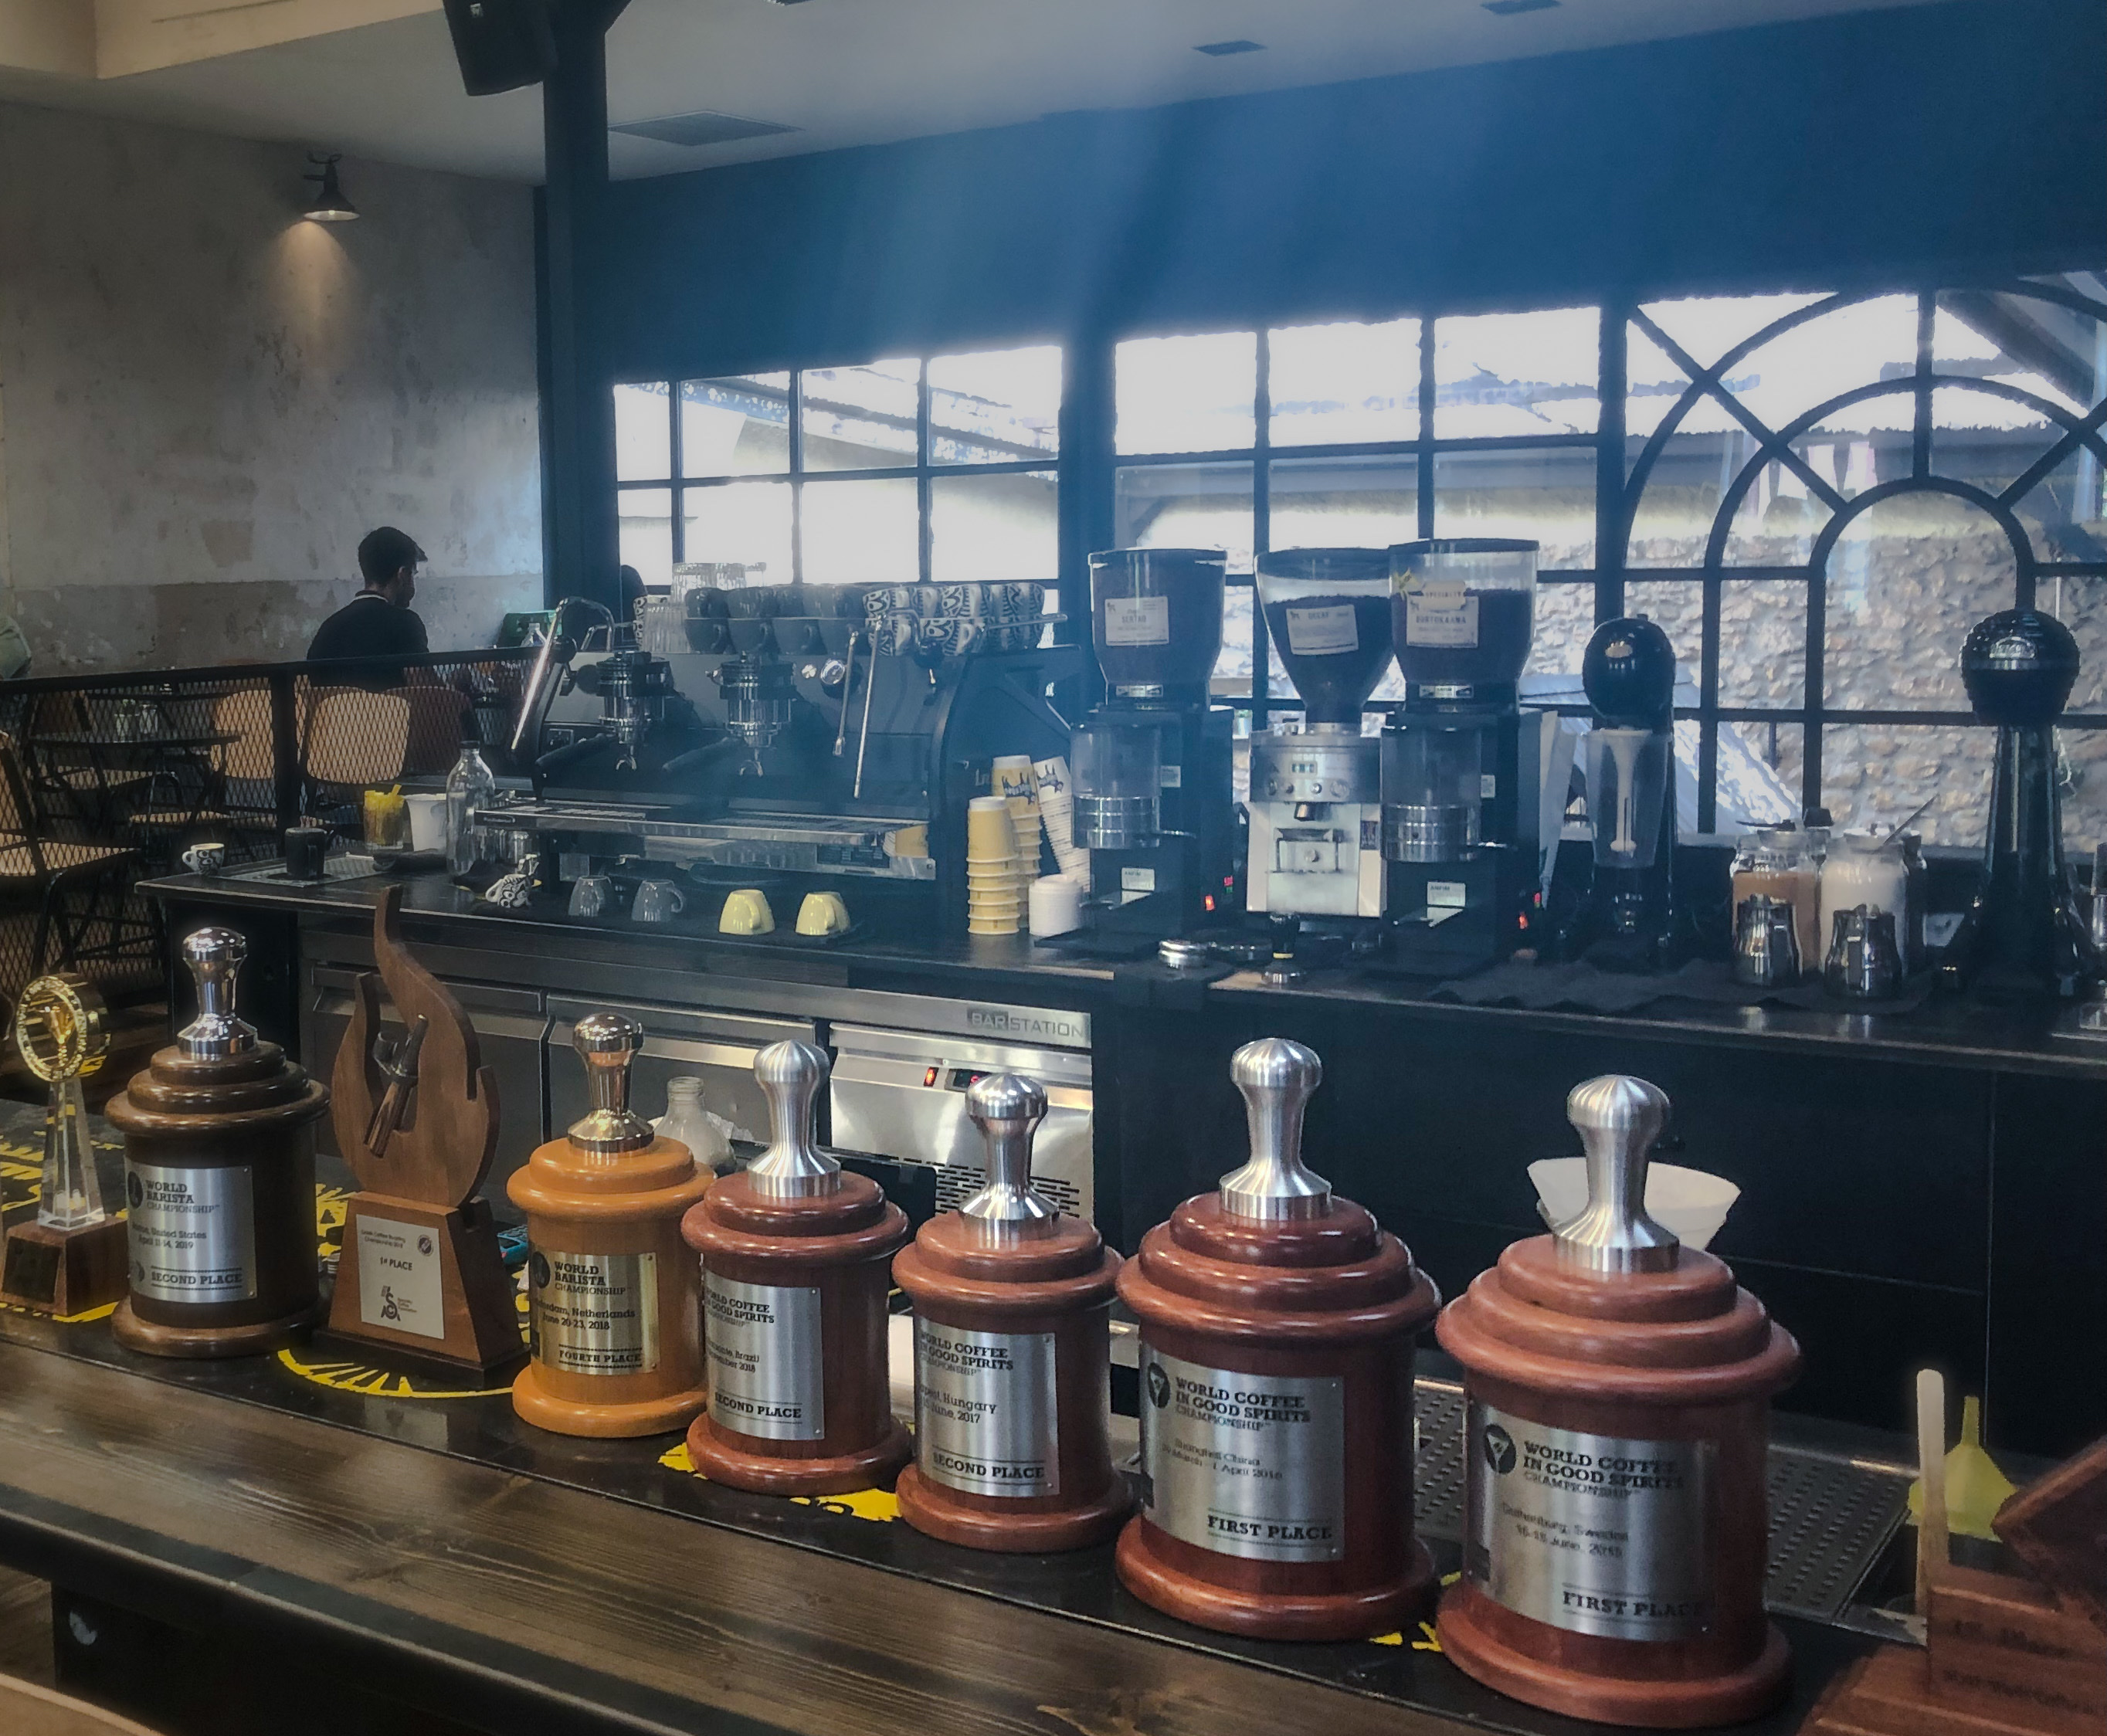 The barista bar at The Underdog with awards lining the countertop for their coffee and barista skills. A trendy cafe in Athens, Greece.